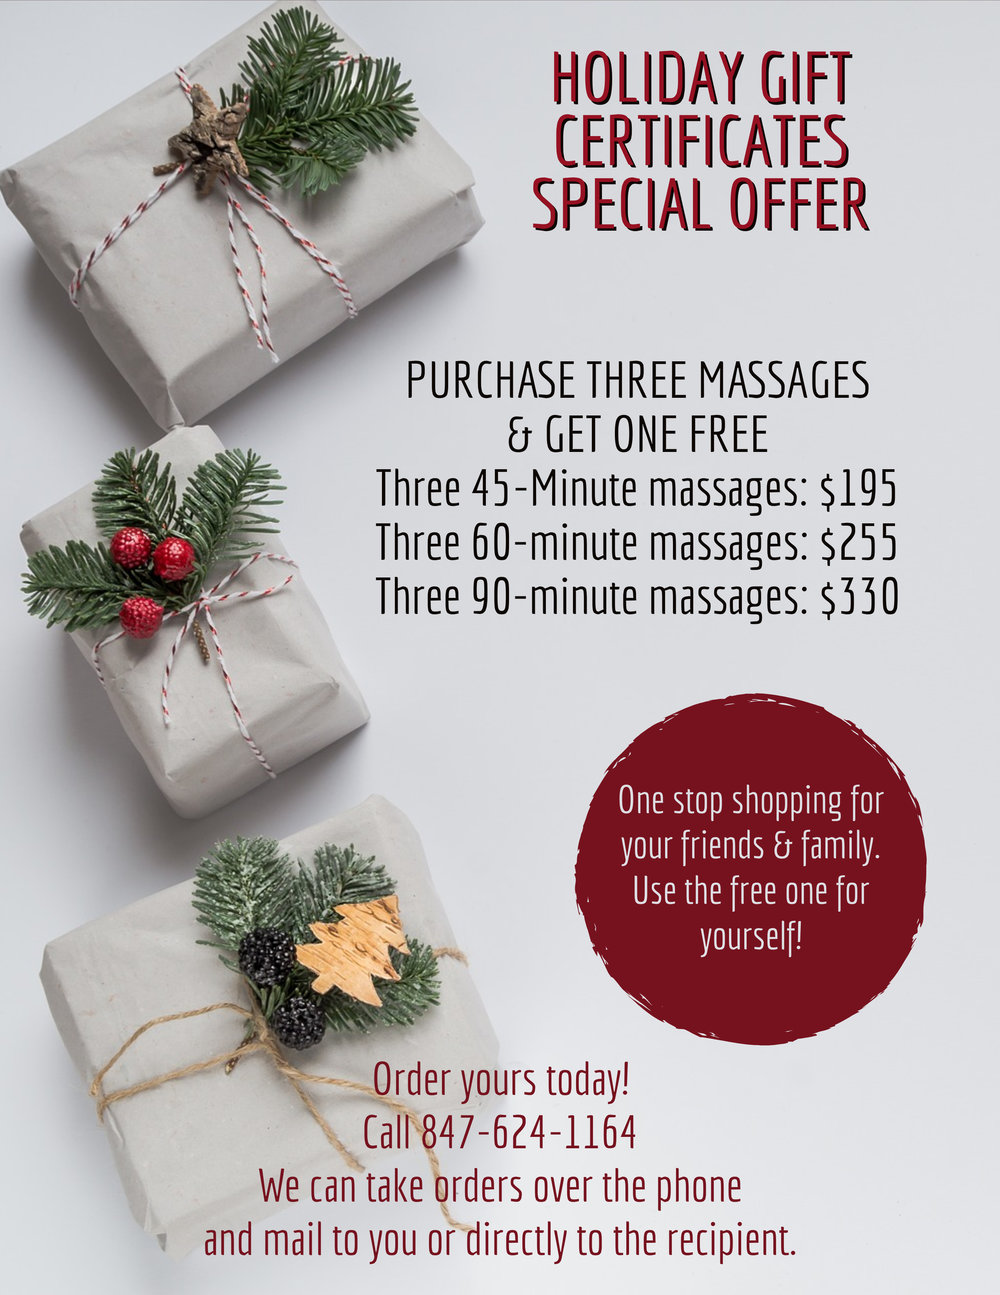 Click image to schedule an appointment or give us a call to purchase gift certificates.